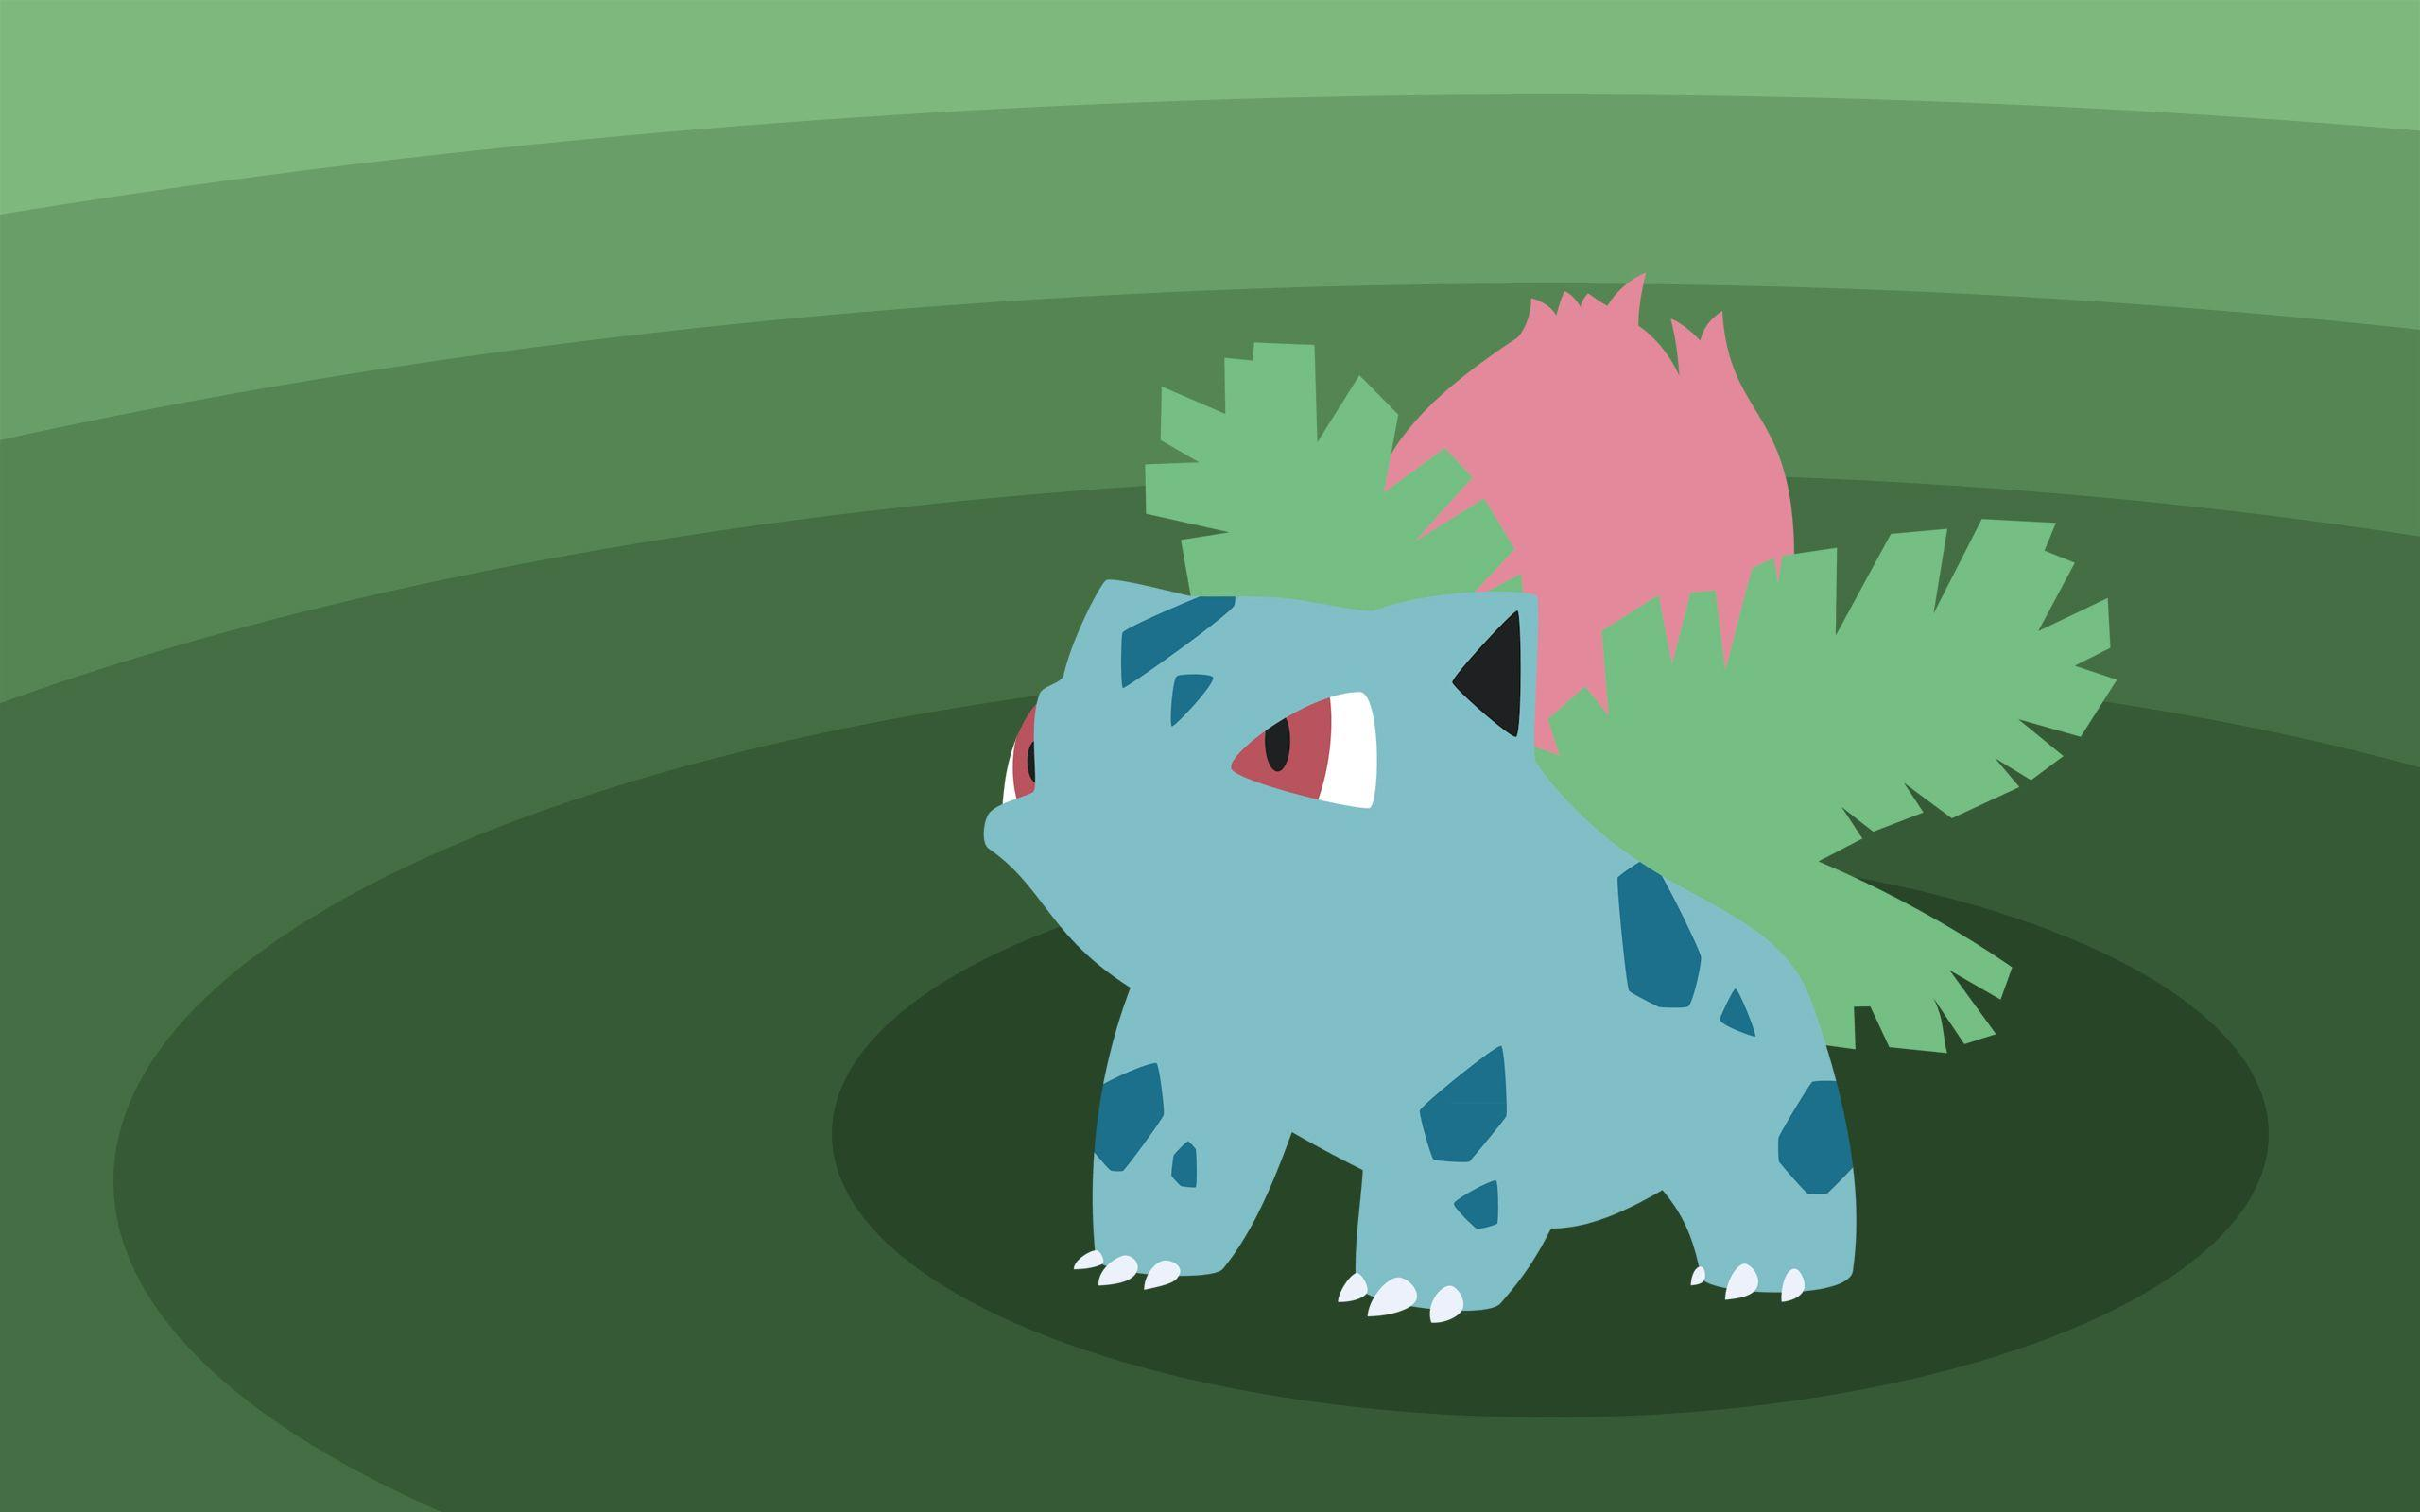 Pkmn 002 Ivysaur by Senzune on DeviantArt